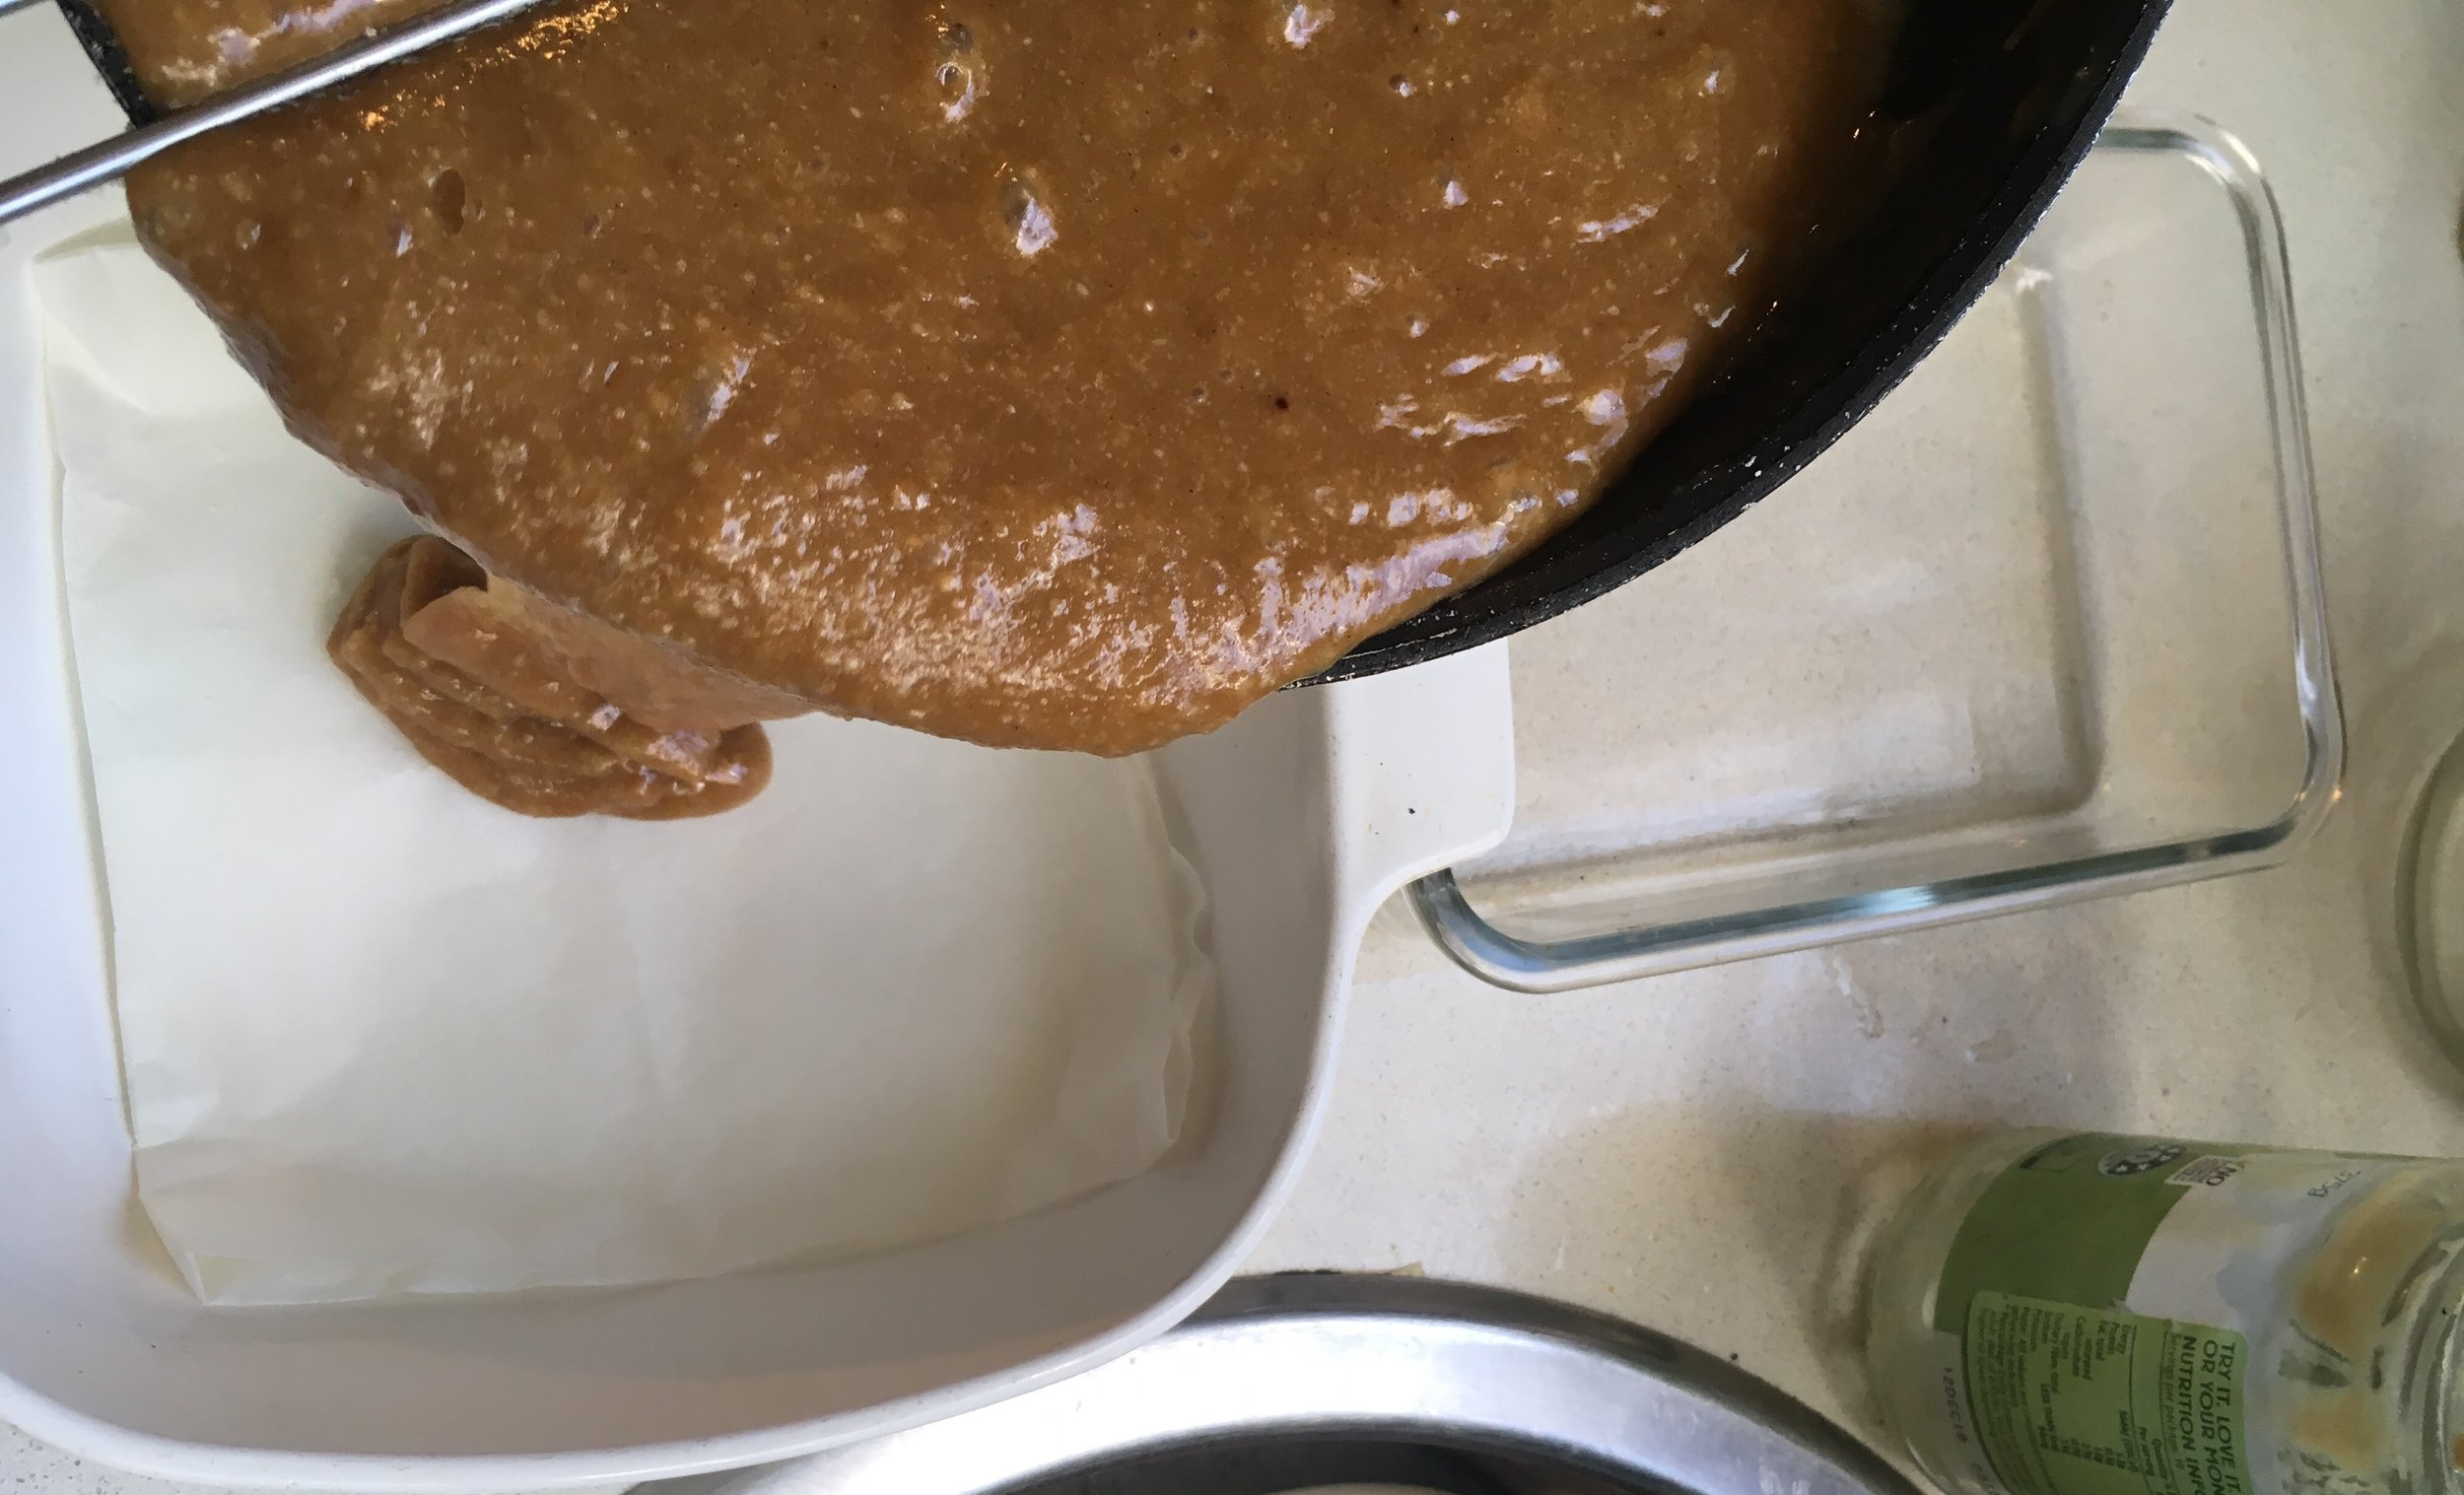 - Pour the batter into a greased and lined baking dish (roughly 17x17cm). The brownies will stick it you don't line the dish with baking paper at least at the bottom of the dish.